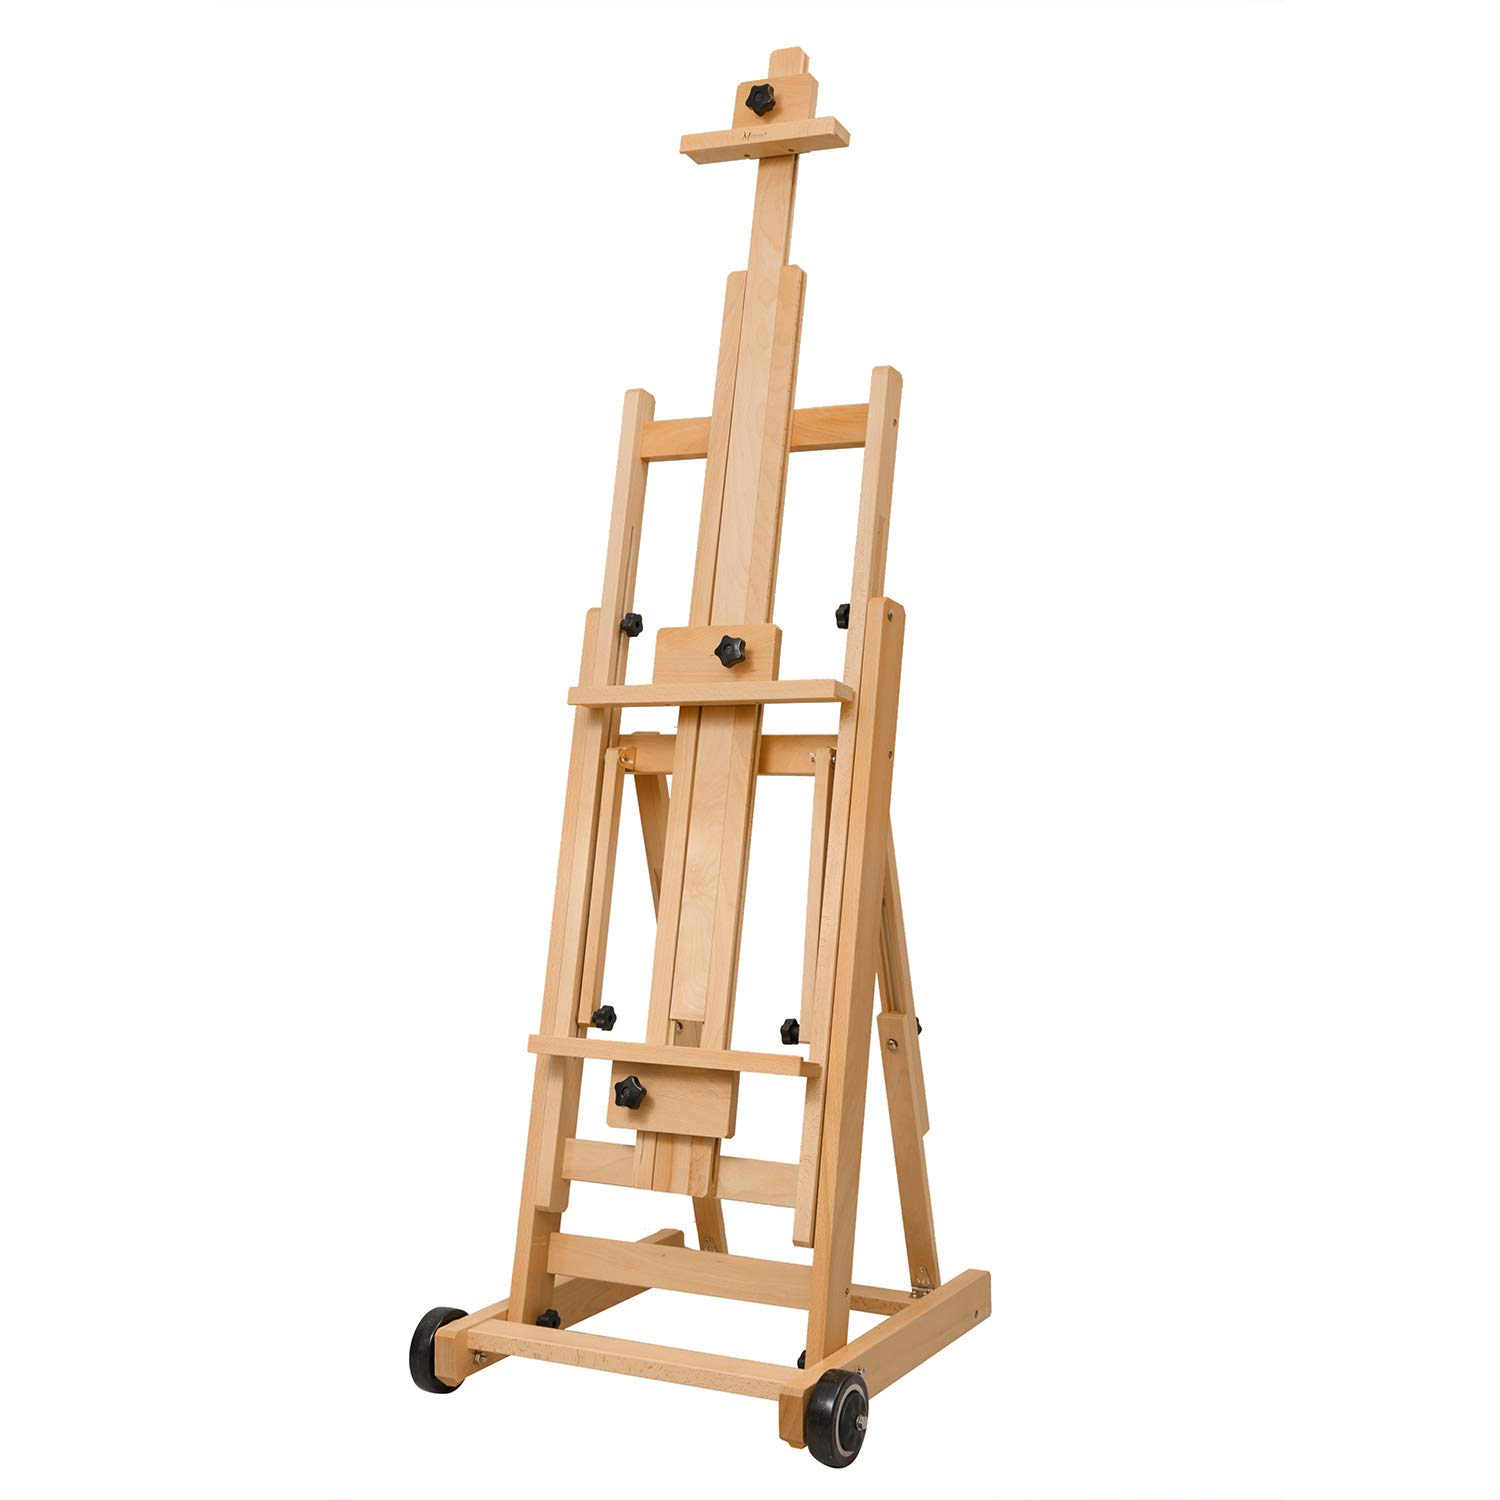 MEEDEN Versatile Studio H-Frame Easel - All Media Adjustable Beech Wood Studio Easel, Painting Floor Easel Stand, Movable and Tilting Flat Available, Holds Canvas Art up to 77'' by MEEDEN